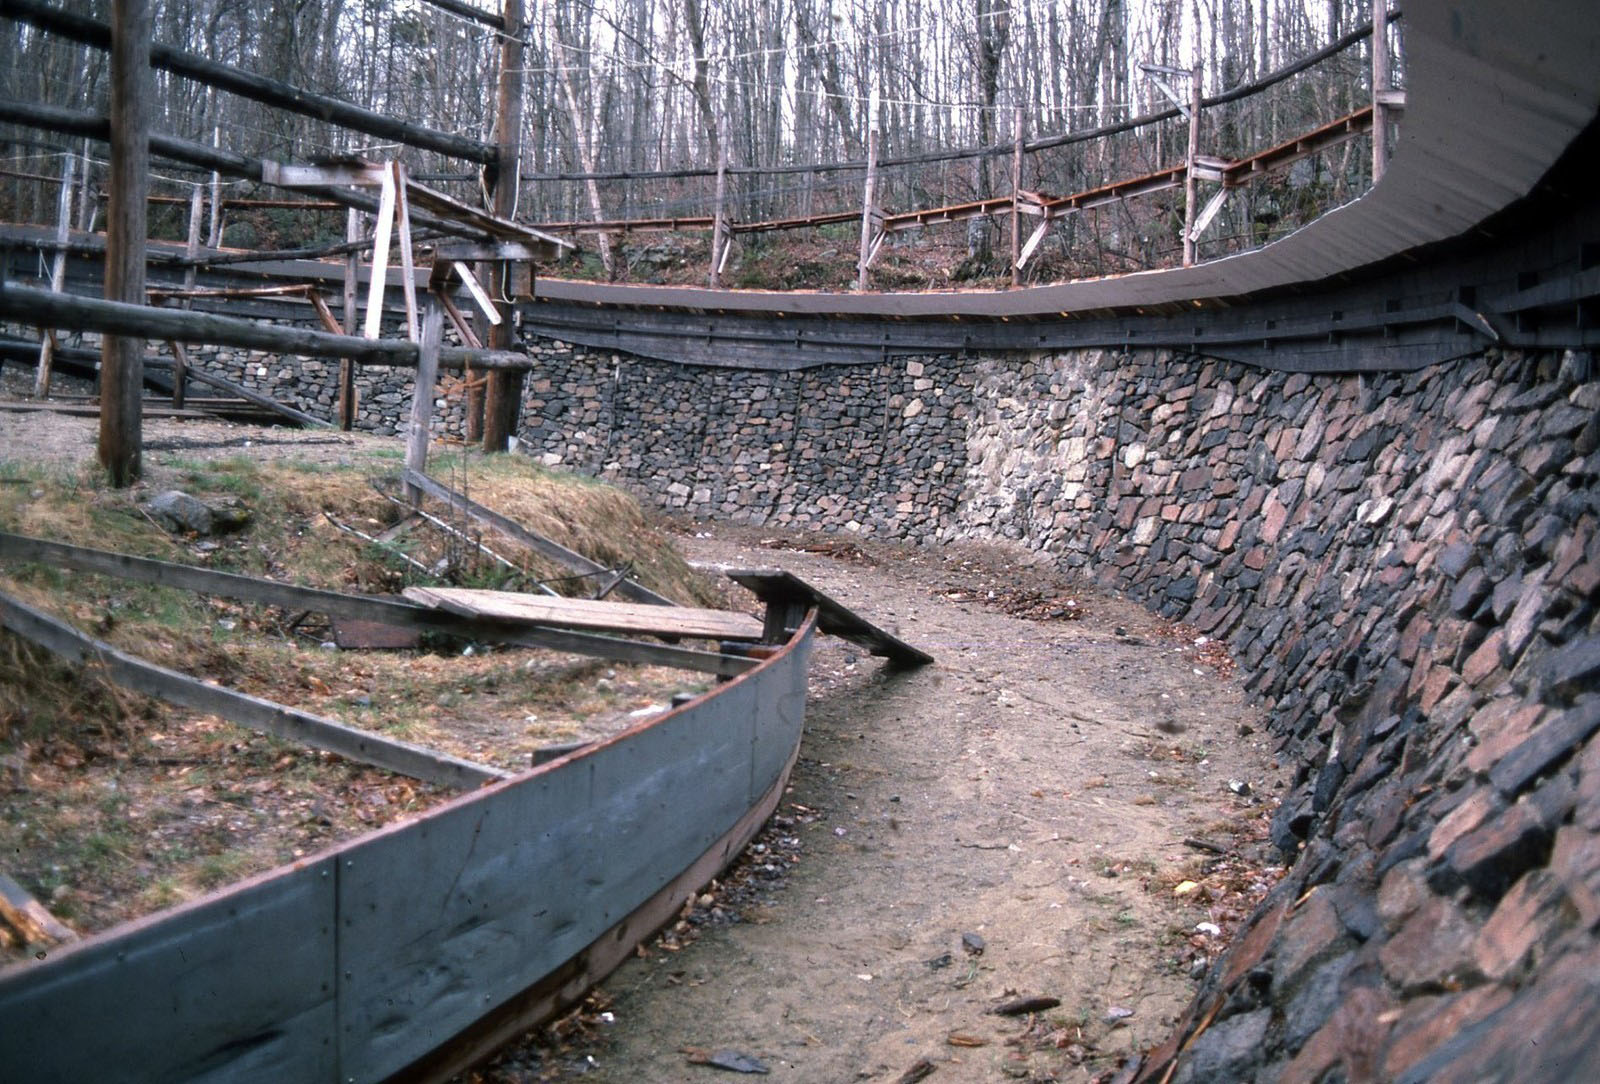 Construction for the 1980 Winter Olympics, Lake Placid, NY